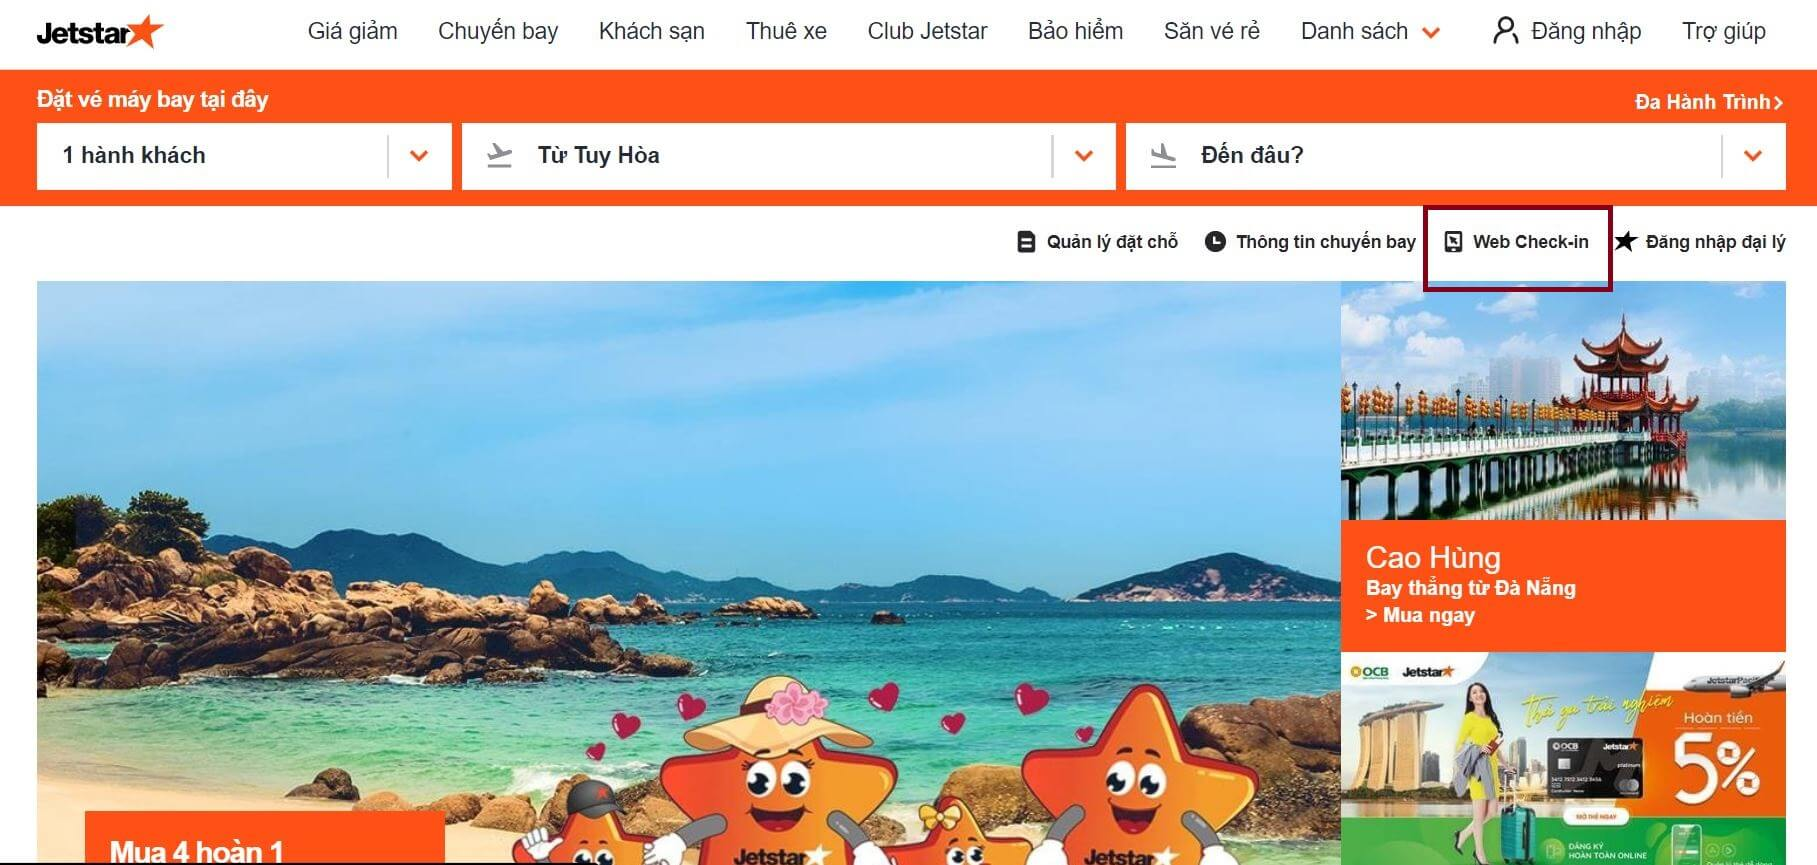 huong-dan-check-in-online-check-in-truc-tuyen-ve-may-bay-5d16ed0038b47_1